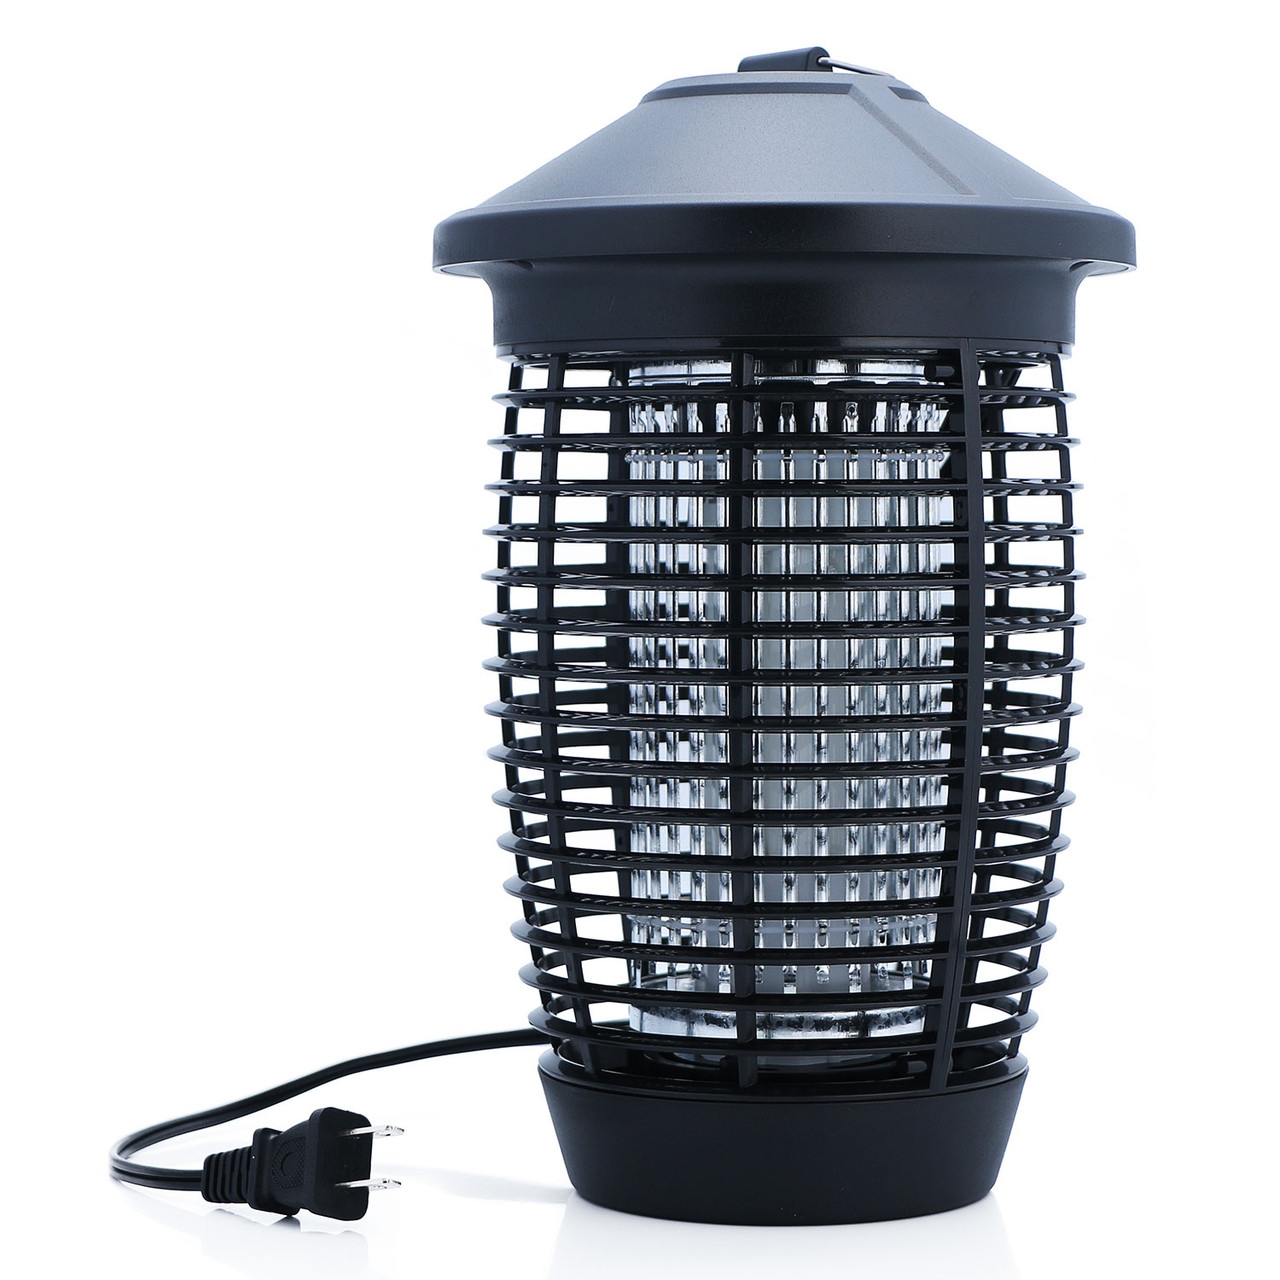 U.S. Solid 20W Electric Bug Zapper Mosquito Killer for indoor and outdoor, Flying Pests Trap, 4000V High Voltage Electric Grid, Black